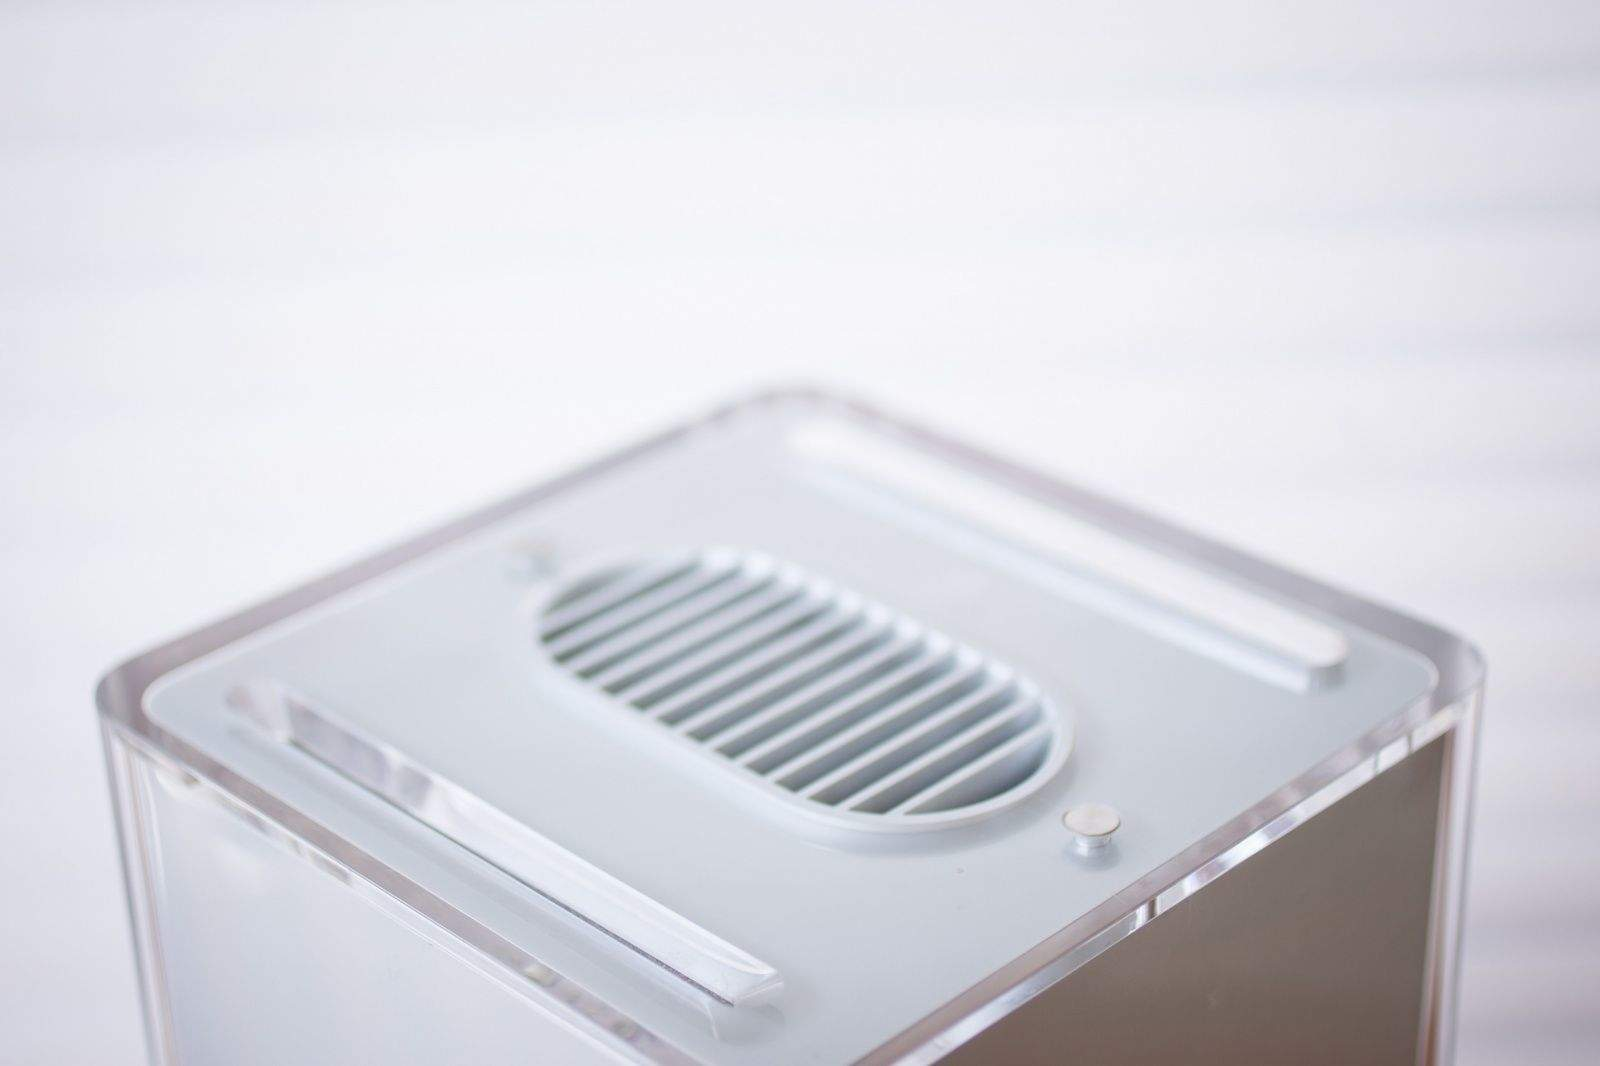 A Stylish Grill Provides Ventilation For The Fan Free Cube.